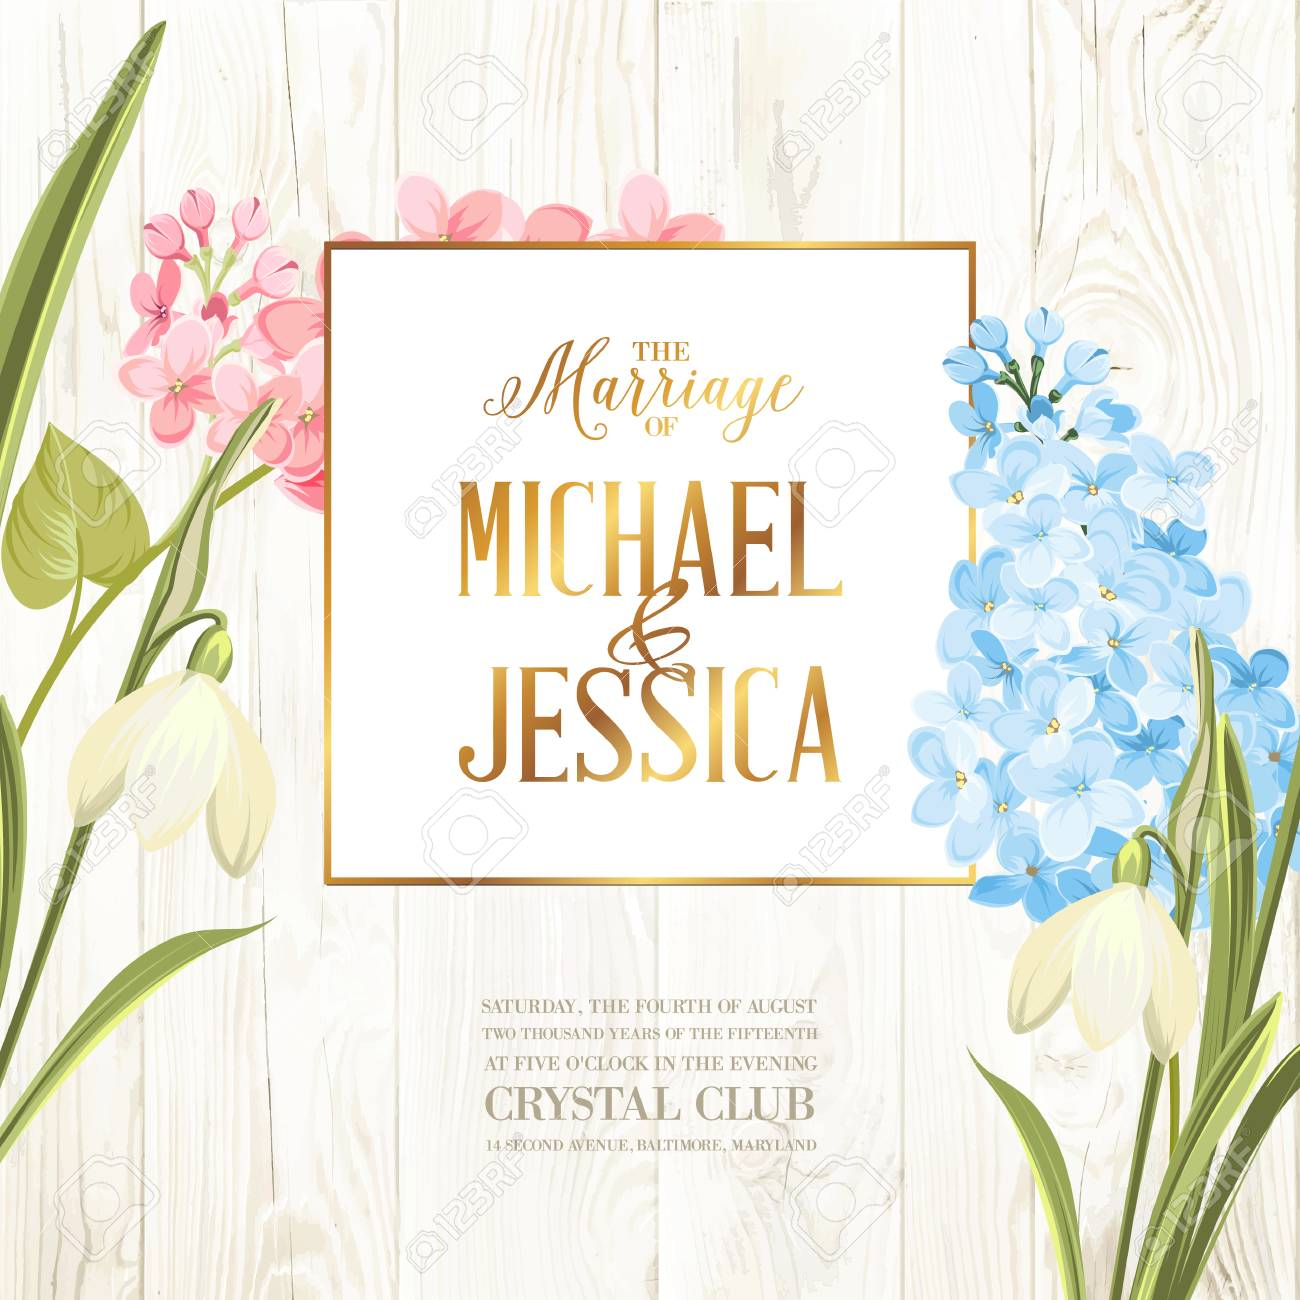 Marriage Invitation Card Wedding Card With Spring Flowers Bridal